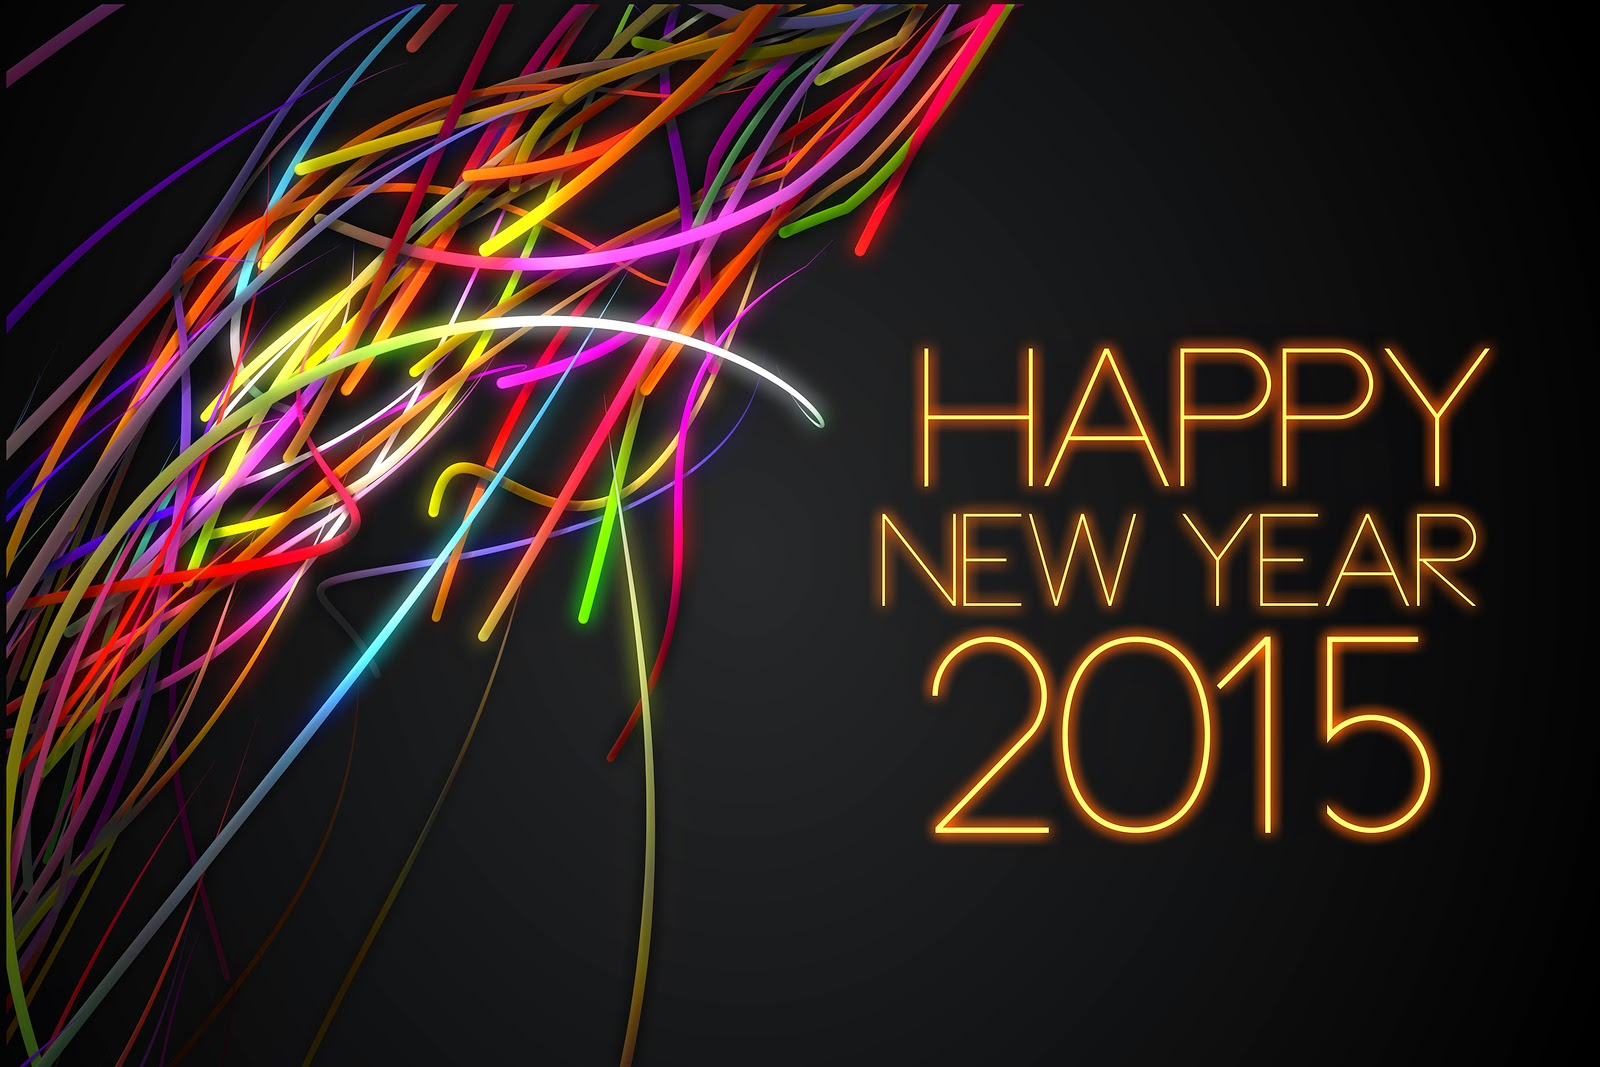 300 happy new year wallpapers 2015 templateism blog